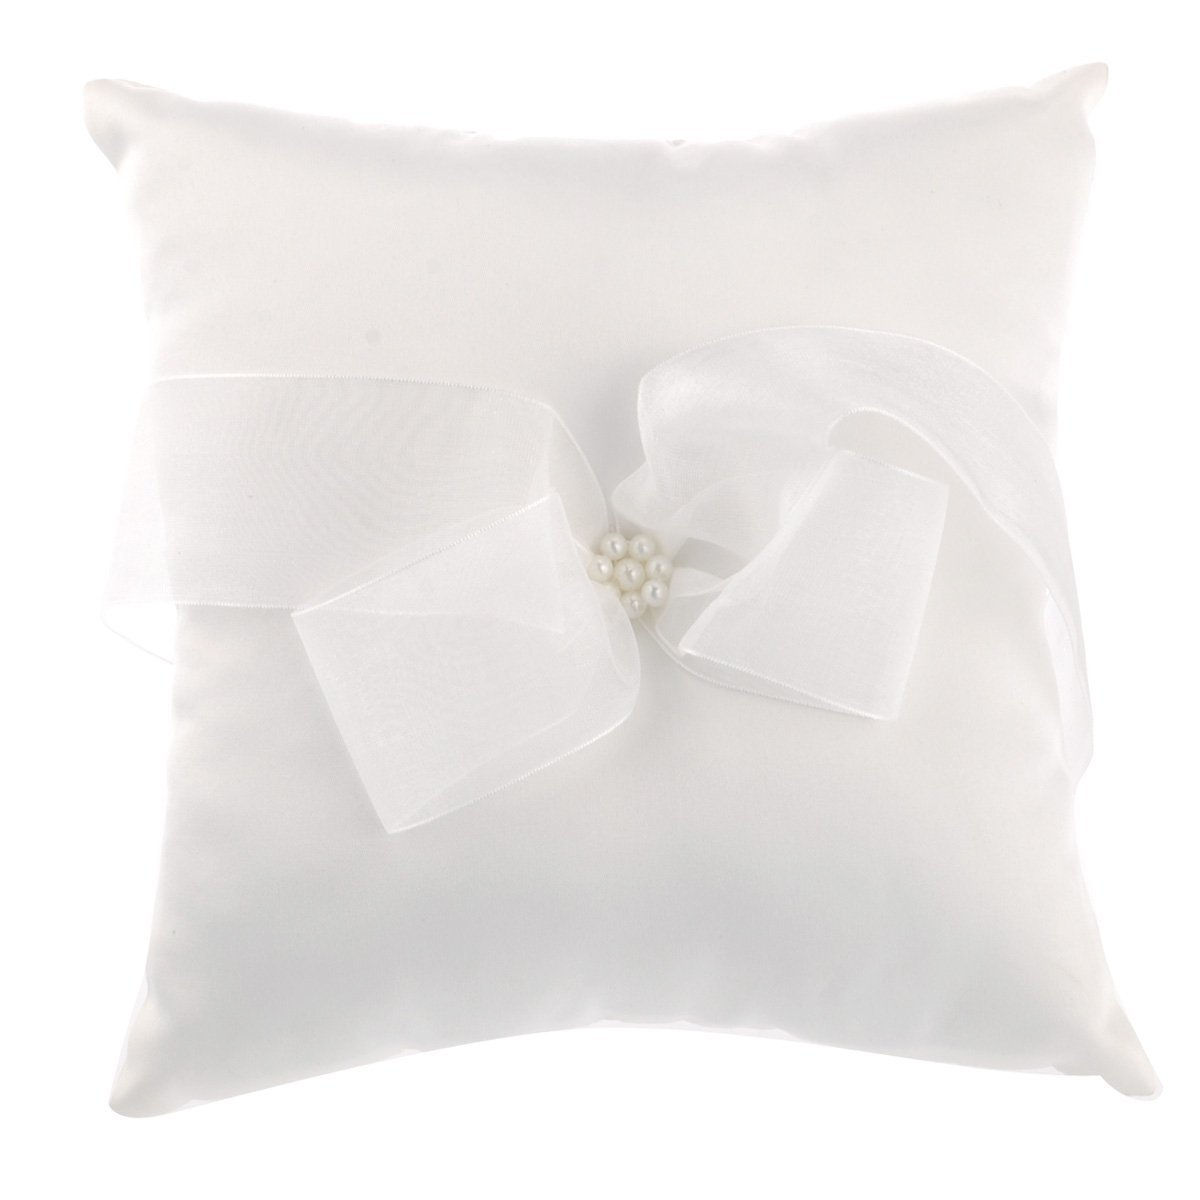 Tinksky 2020cm Satin Bowknot Ribbon Bridal Wedding Ceremony Ring Bearer Pillow Pearl Cushion (White)